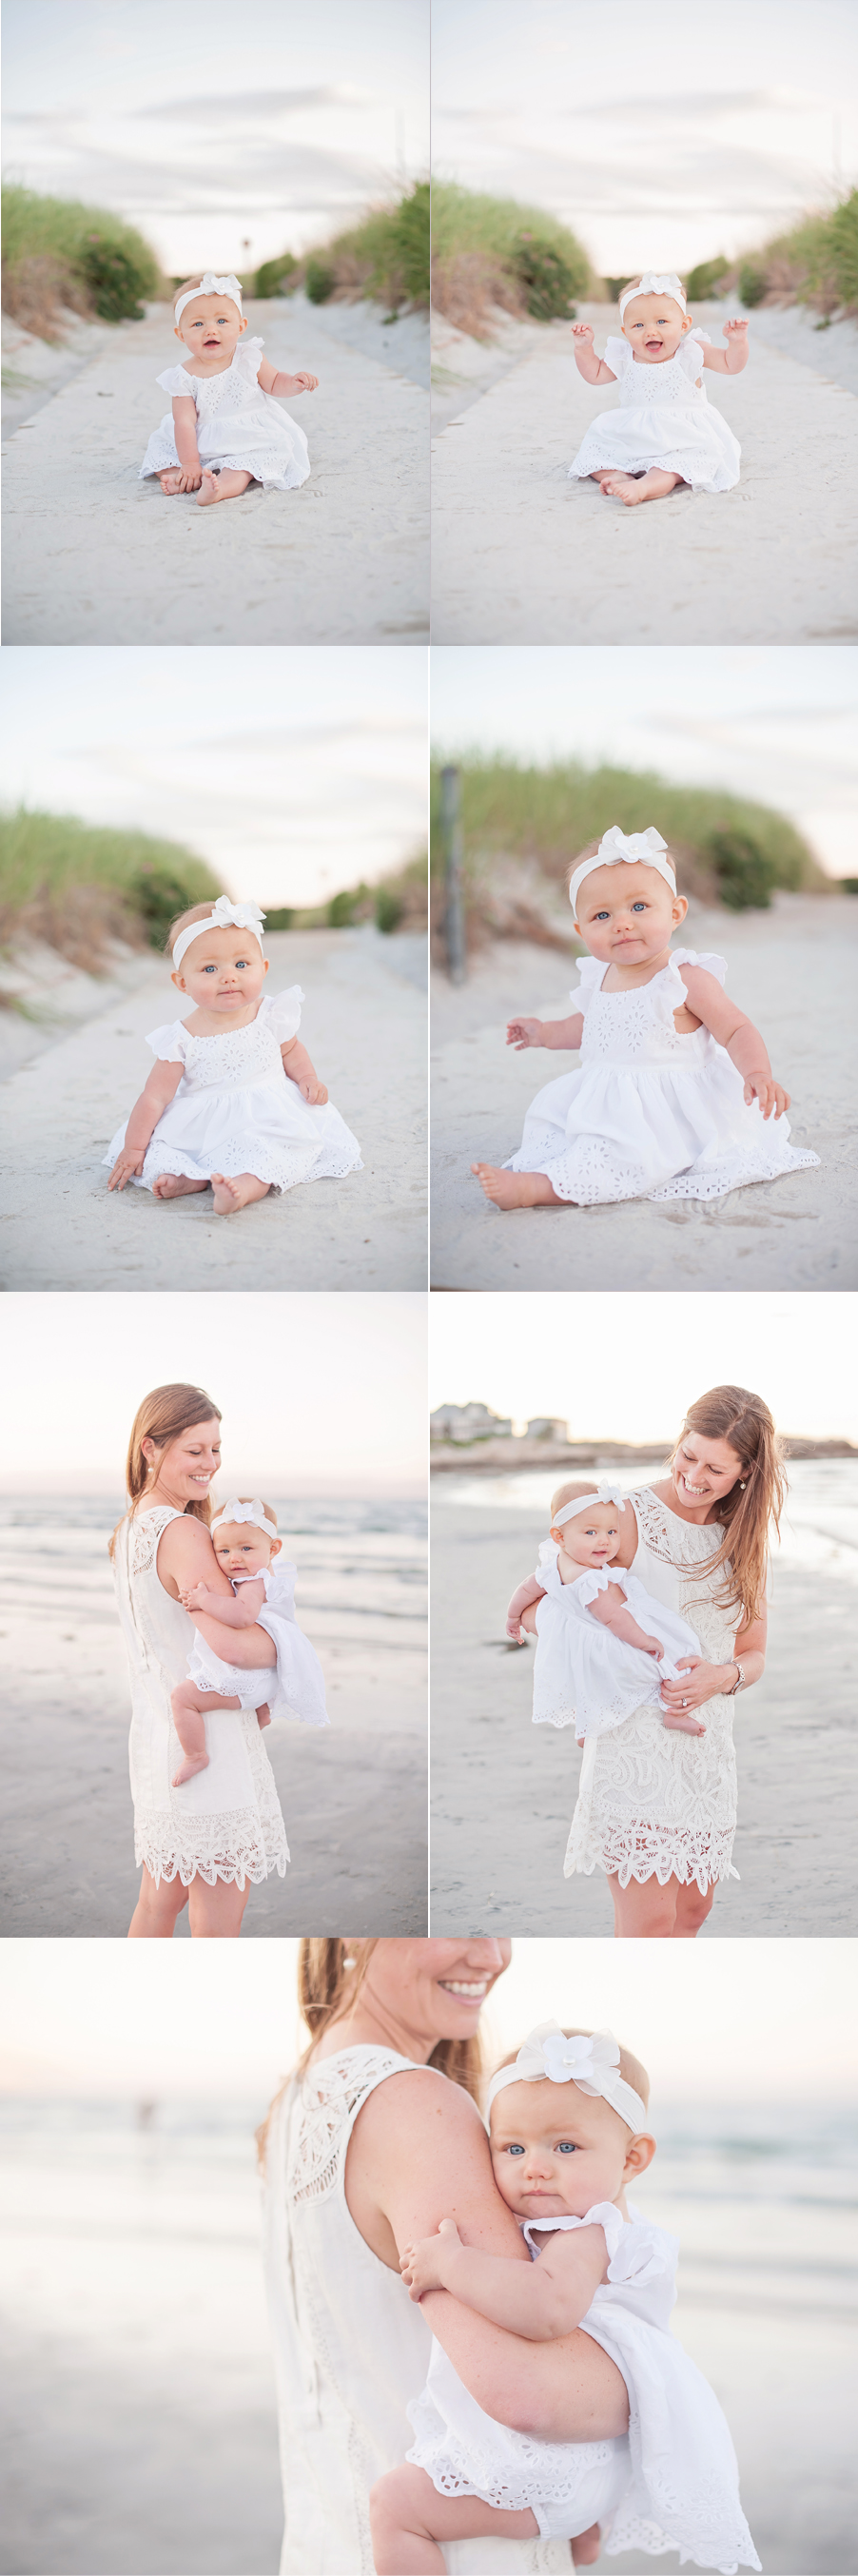 massachusetts baby and family beach photographer